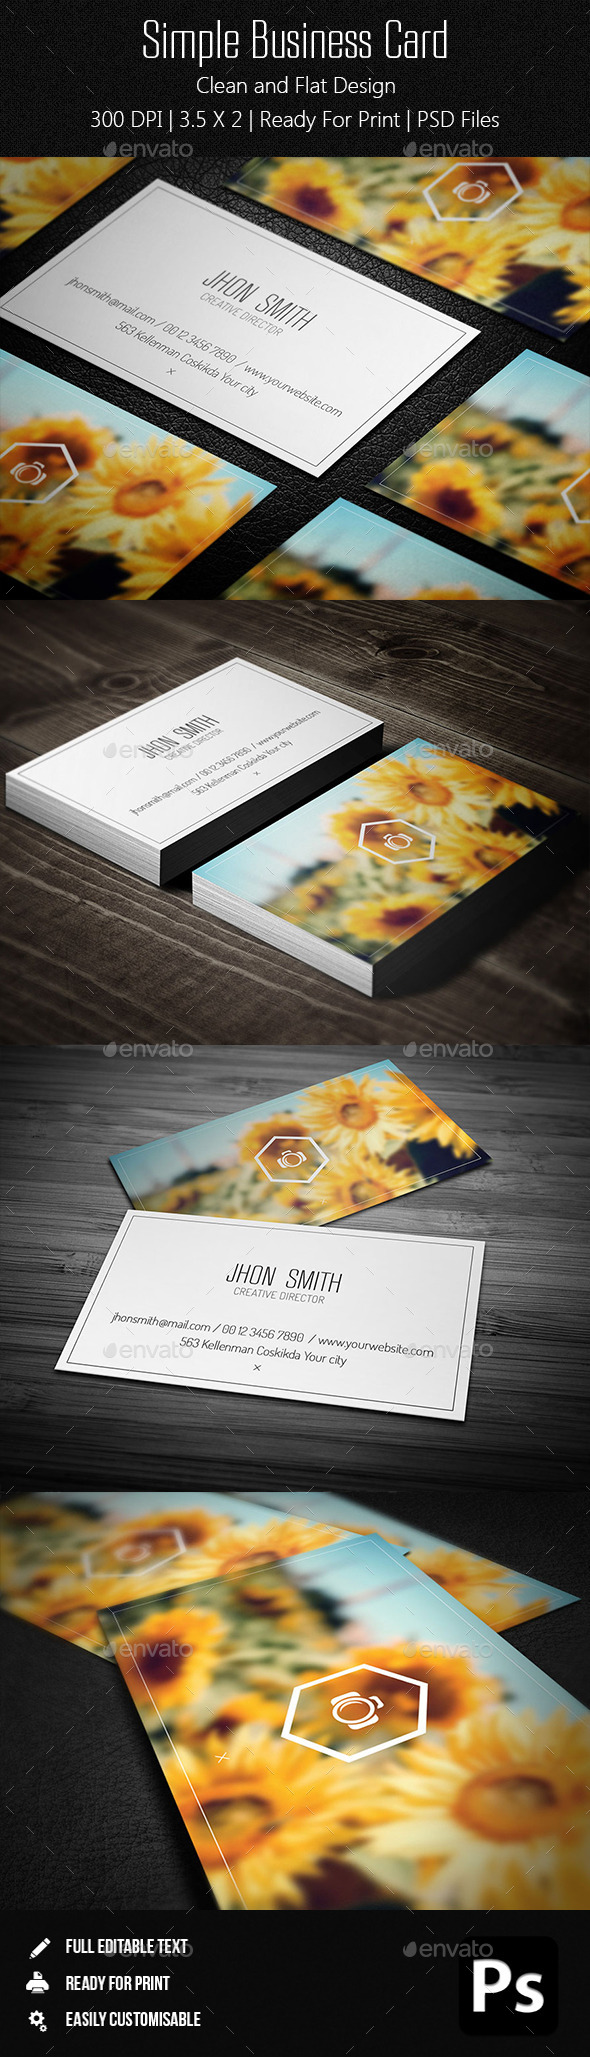 GraphicRiver Simple Business Card 11220845